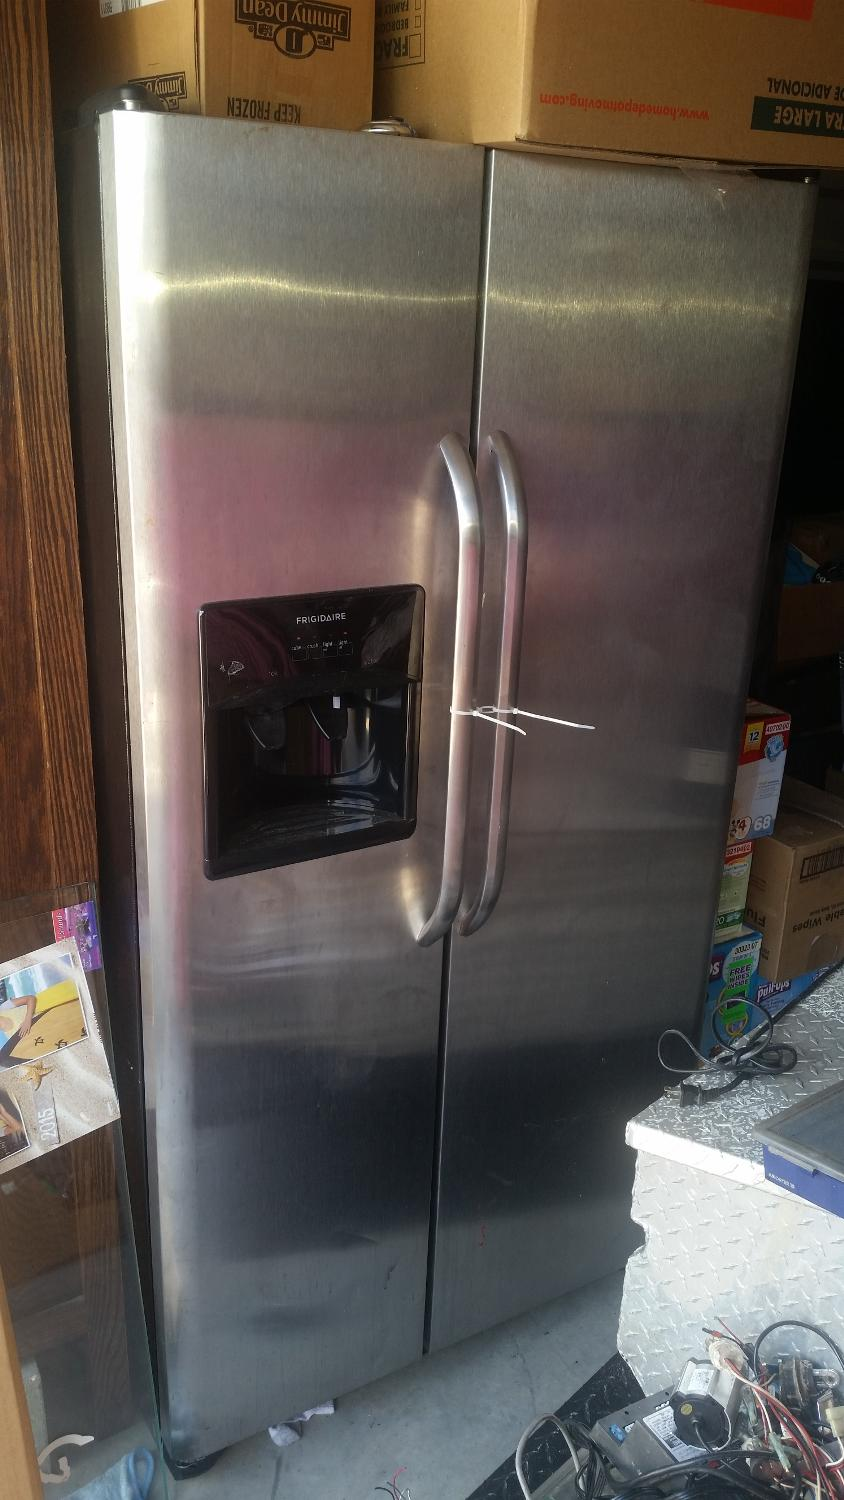 Frigidaire stainless steel side by side refrigerator